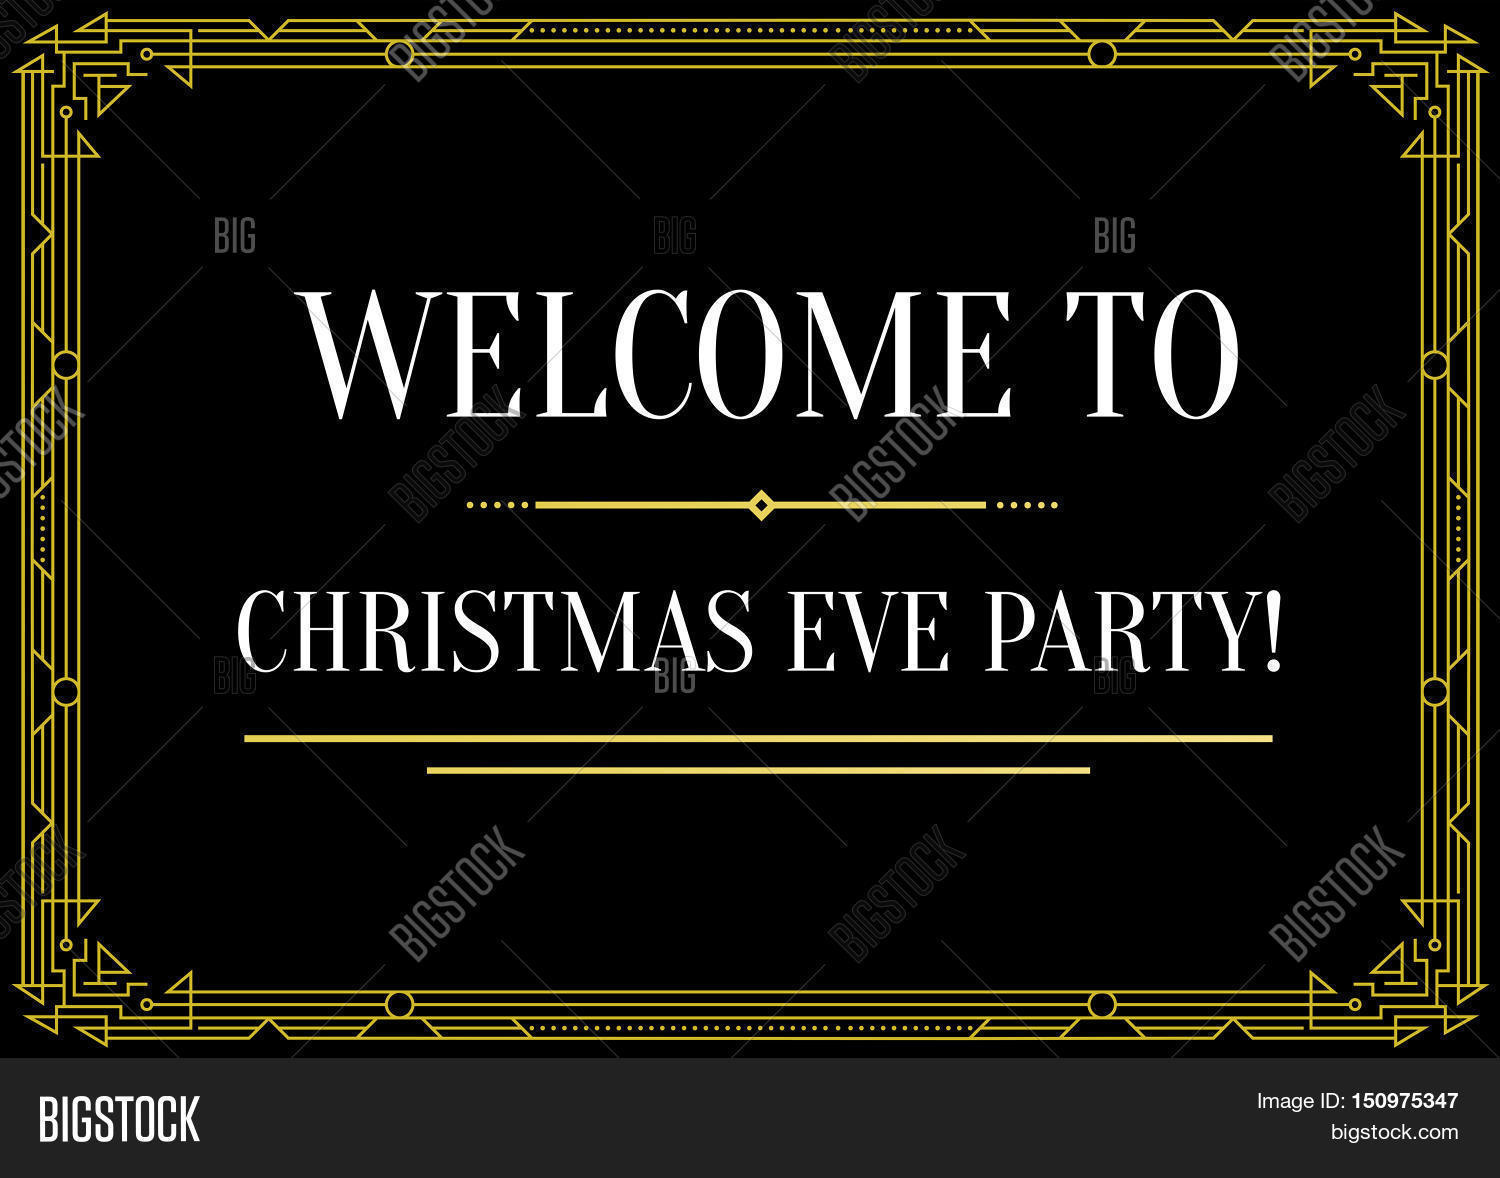 Gatsby style vector photo free trial bigstock gatsby style invitation in art deco or nouveau epoch 1920s gangster era vector stopboris Image collections